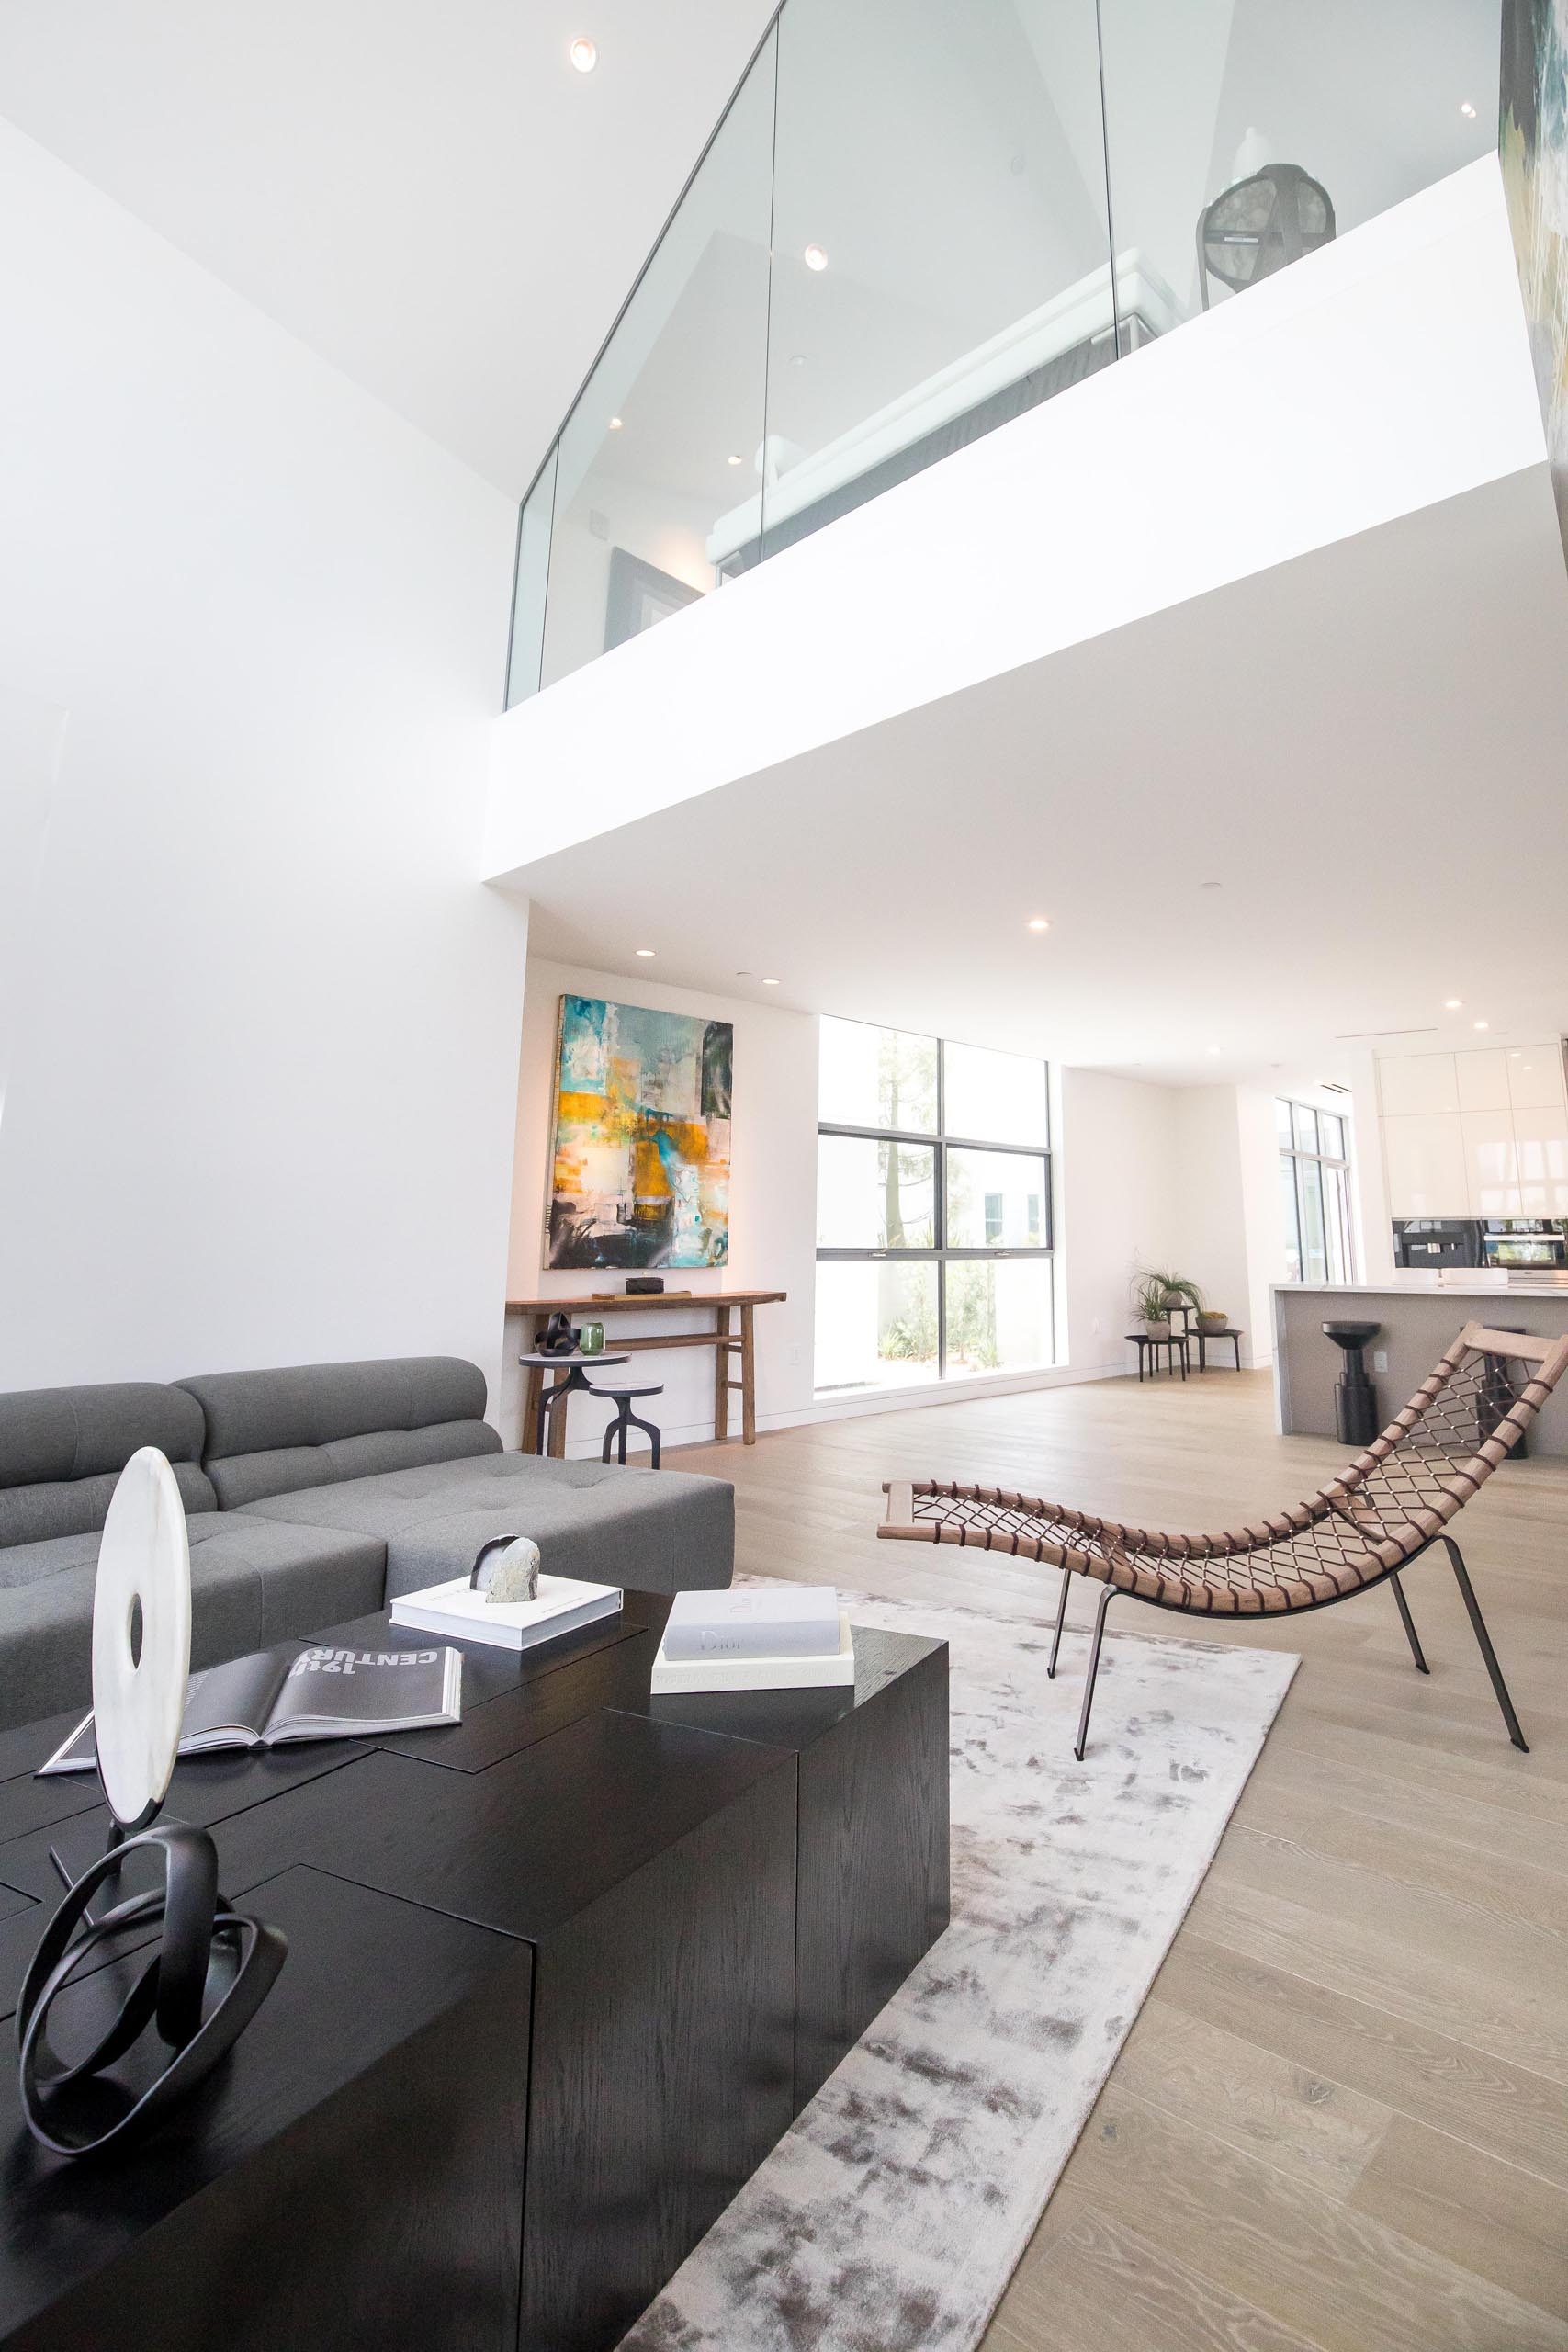 A modern open plan living room with a double height ceiling.